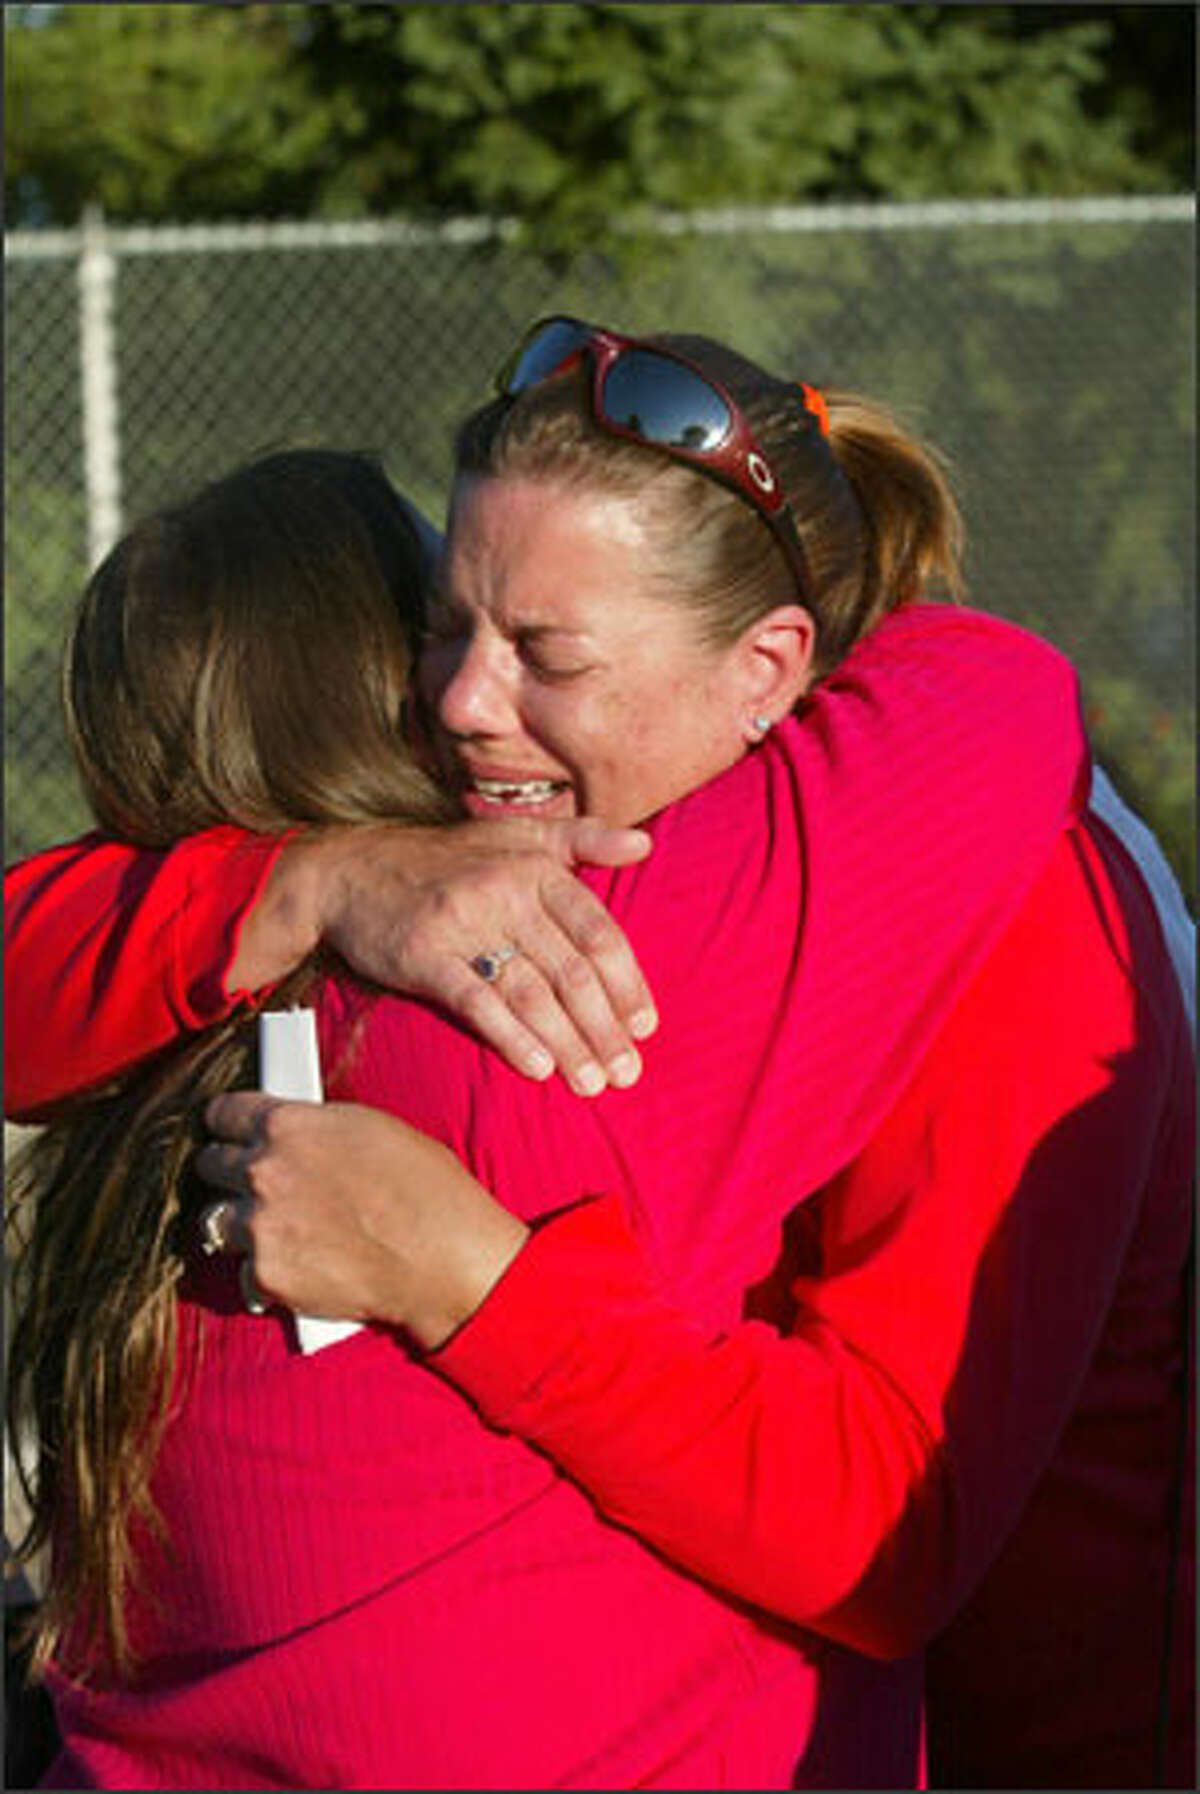 Jane Jesse Smith, right, hugs childhood friend Heidi Ackerman as they reunite for the first time in 23 years Tuesday in Seattle. Smith and her 10-year-old daughter, Randi, fled Bay St. Louis, Miss.